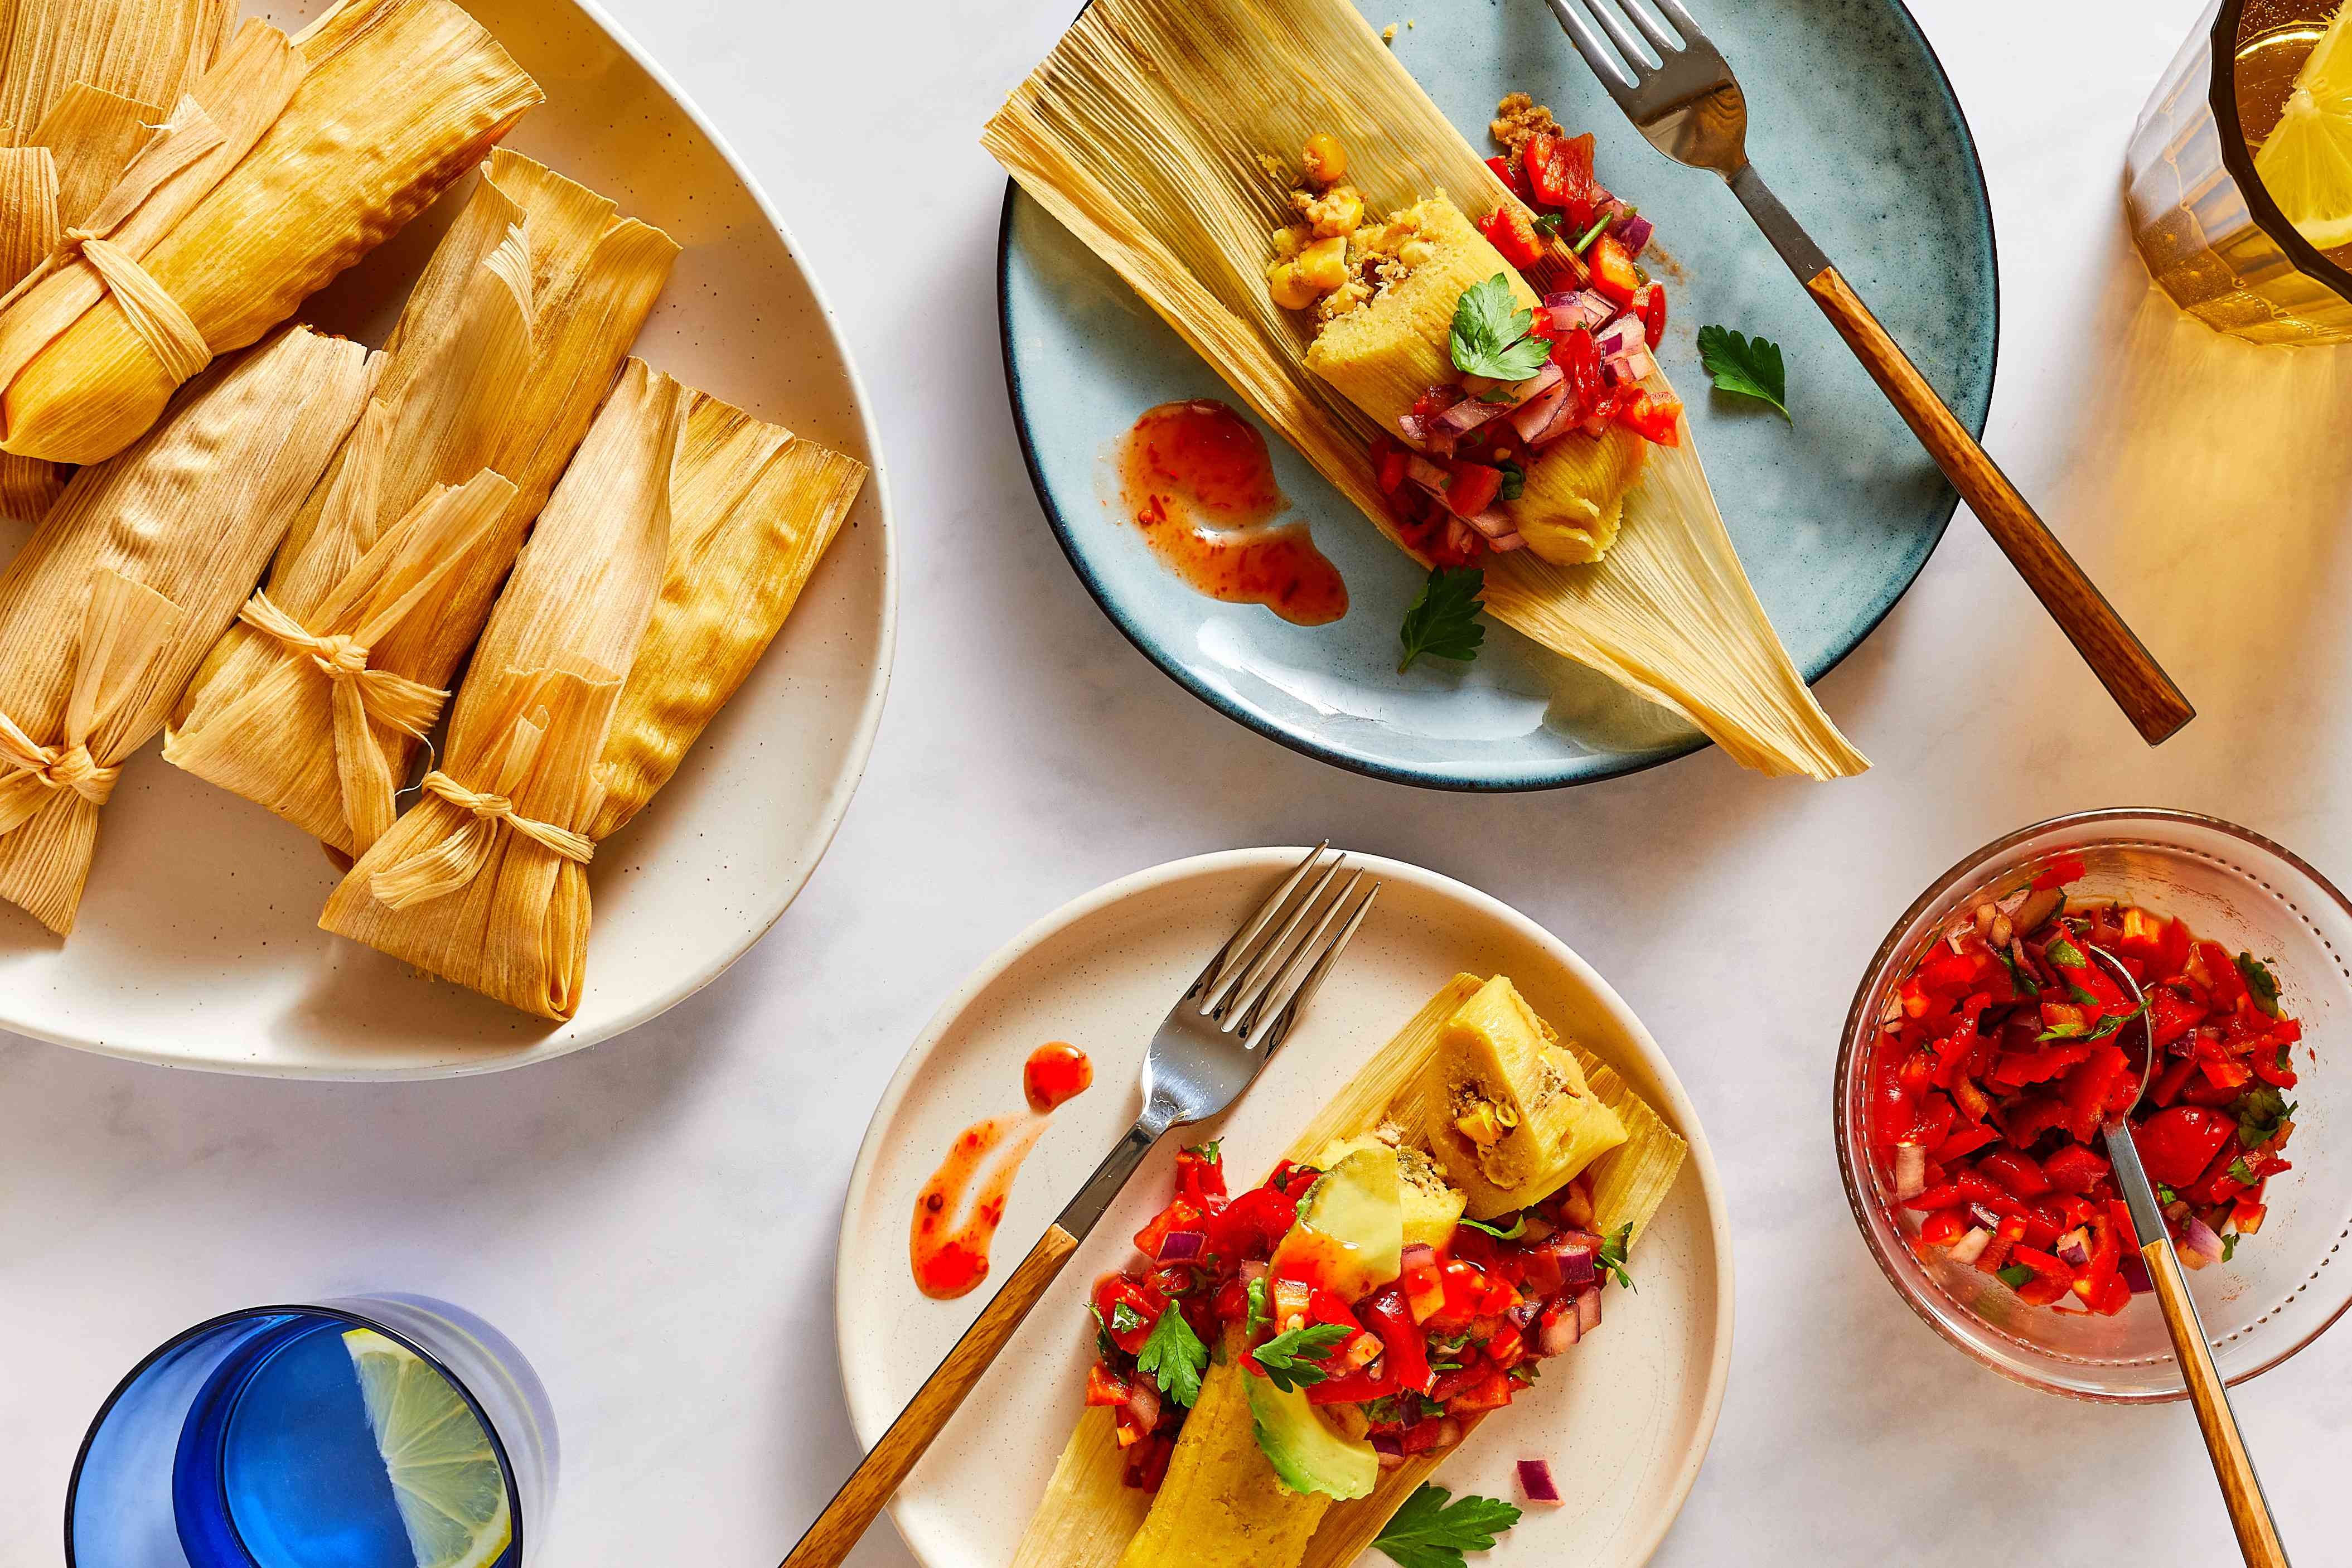 Corn, Green Chile, and Cheese Tamales, served on plates with pico de gallo